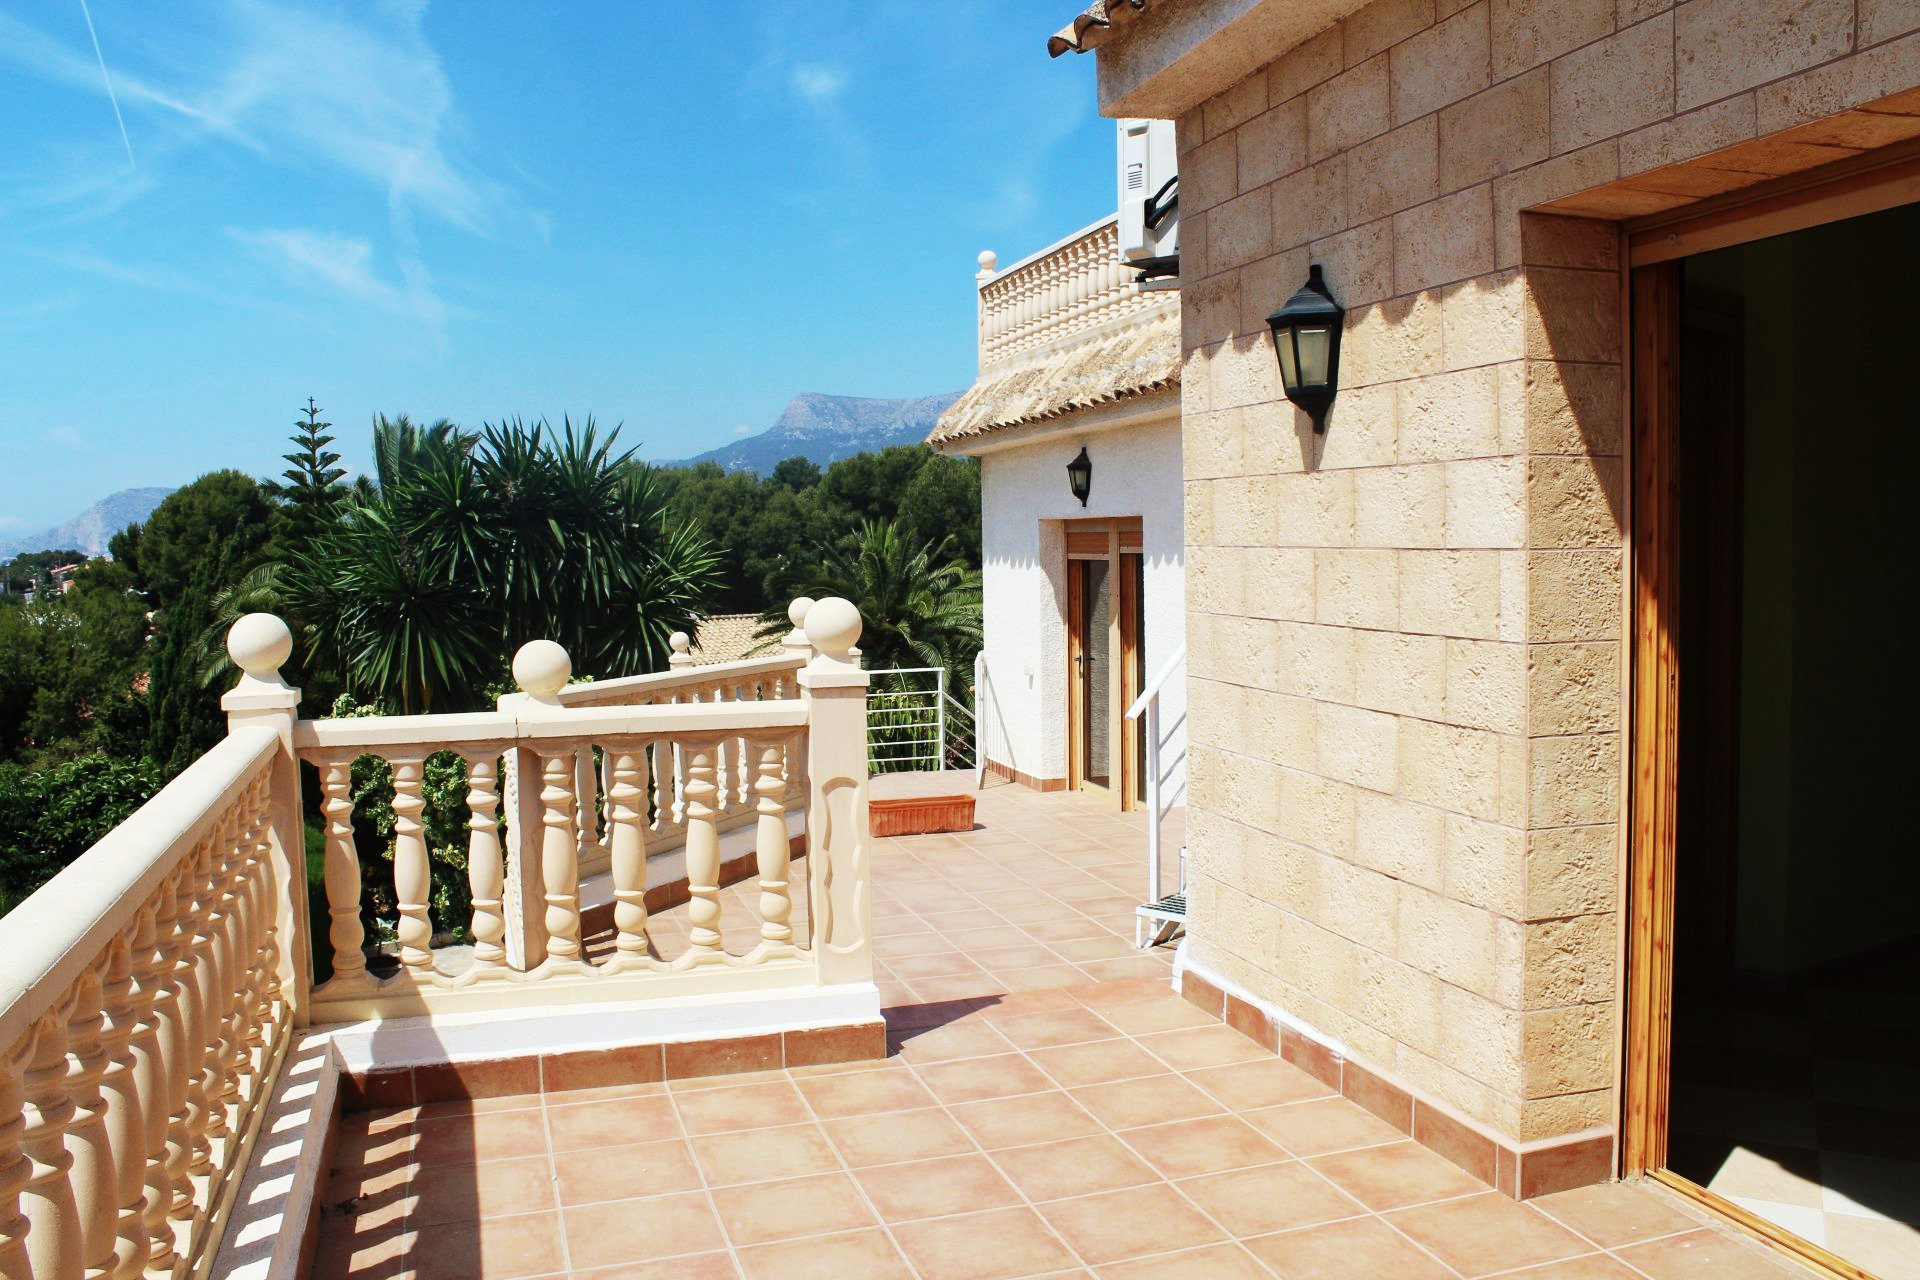 Renovated 7-bedroom villa with great views